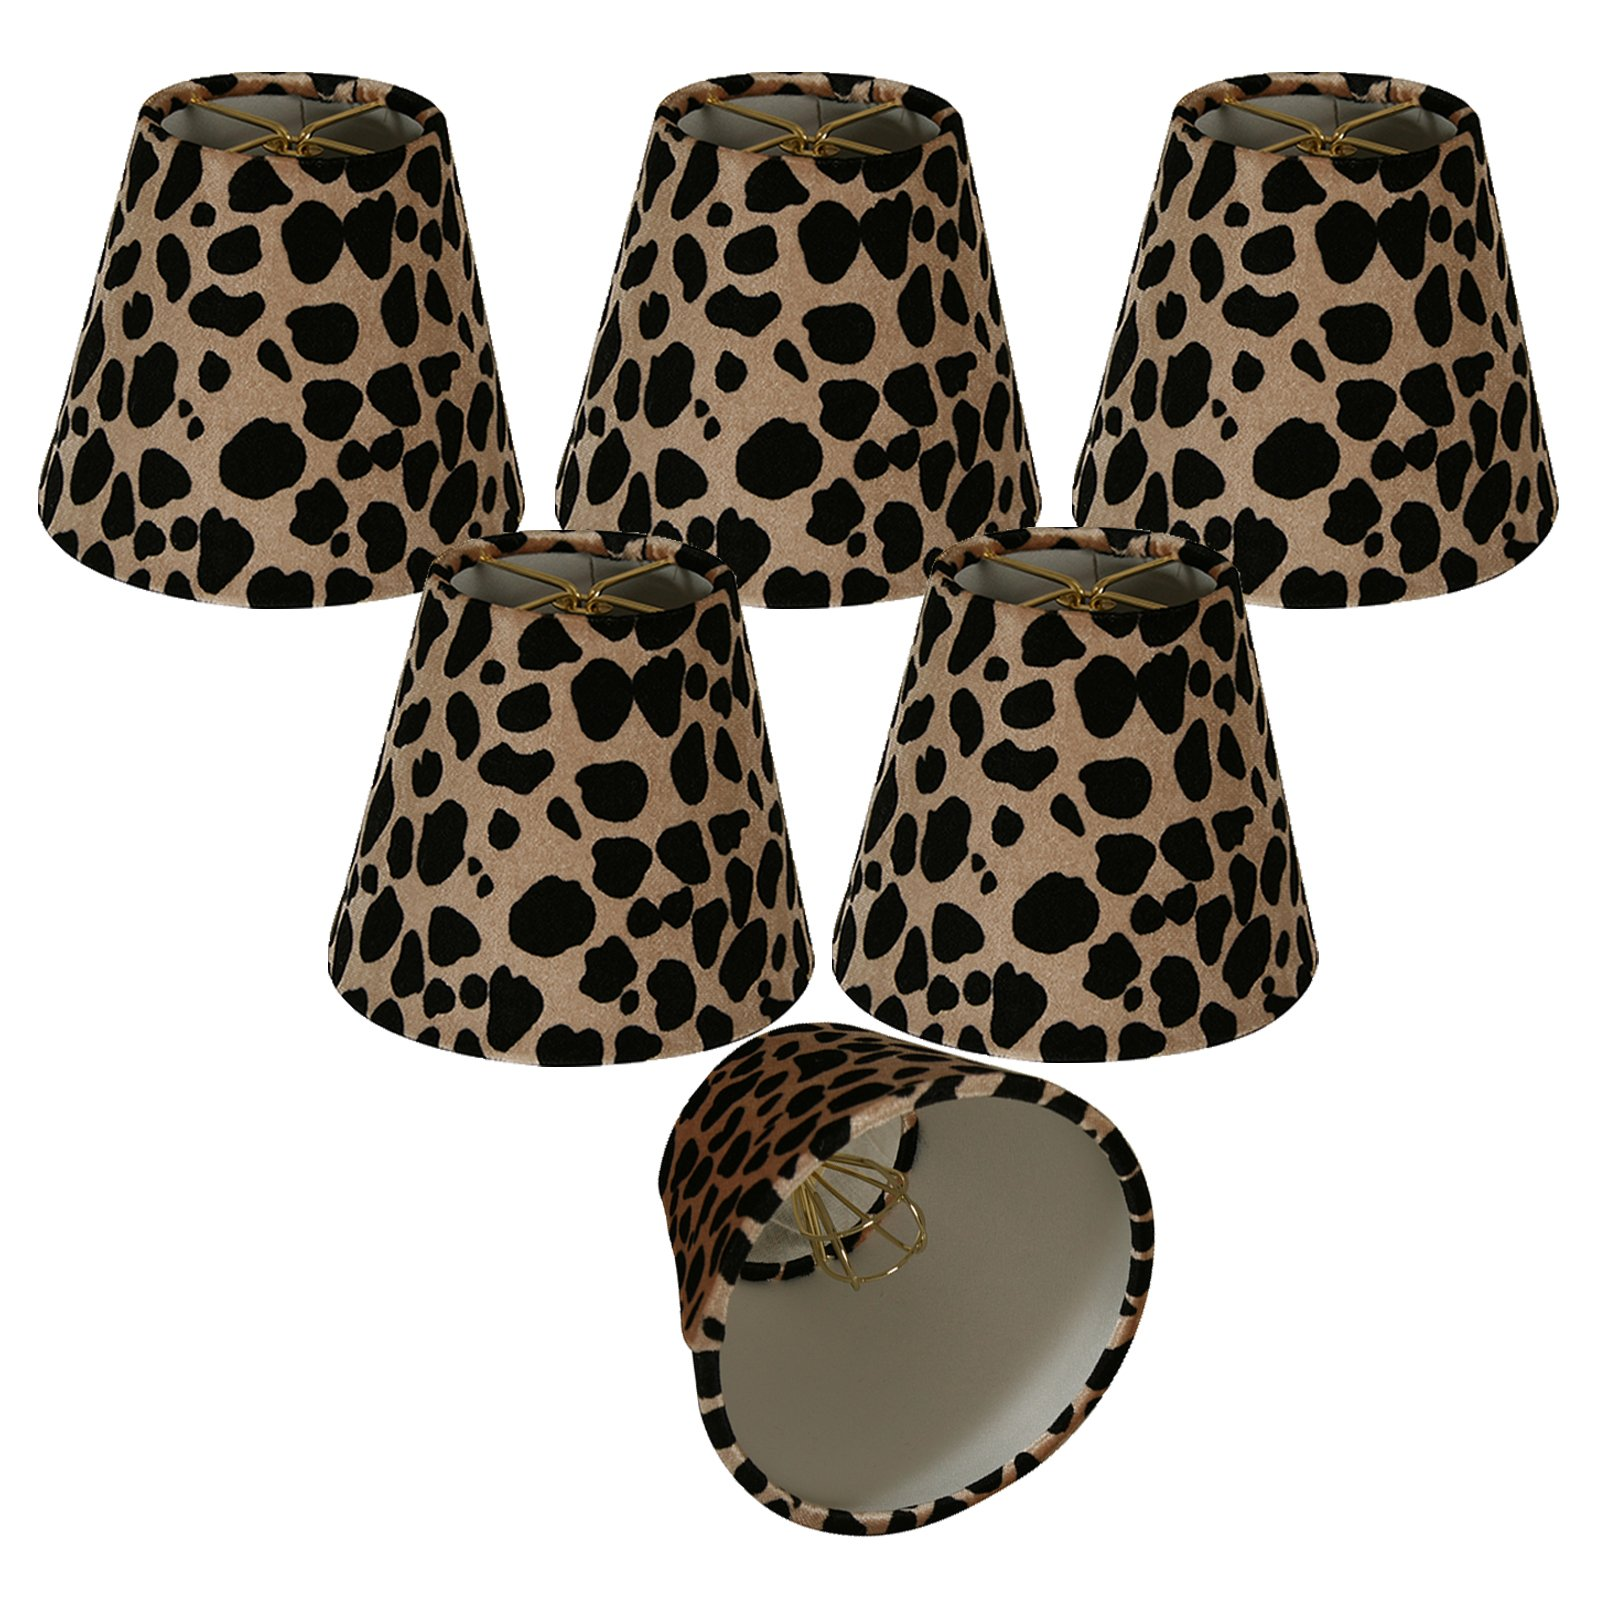 Royal Designs 5'' Black & Brown Large Leopard Print Chandelier Lamp Shade, Set of 6, 3 x 5 x 4.5 (CS-960-5-6)